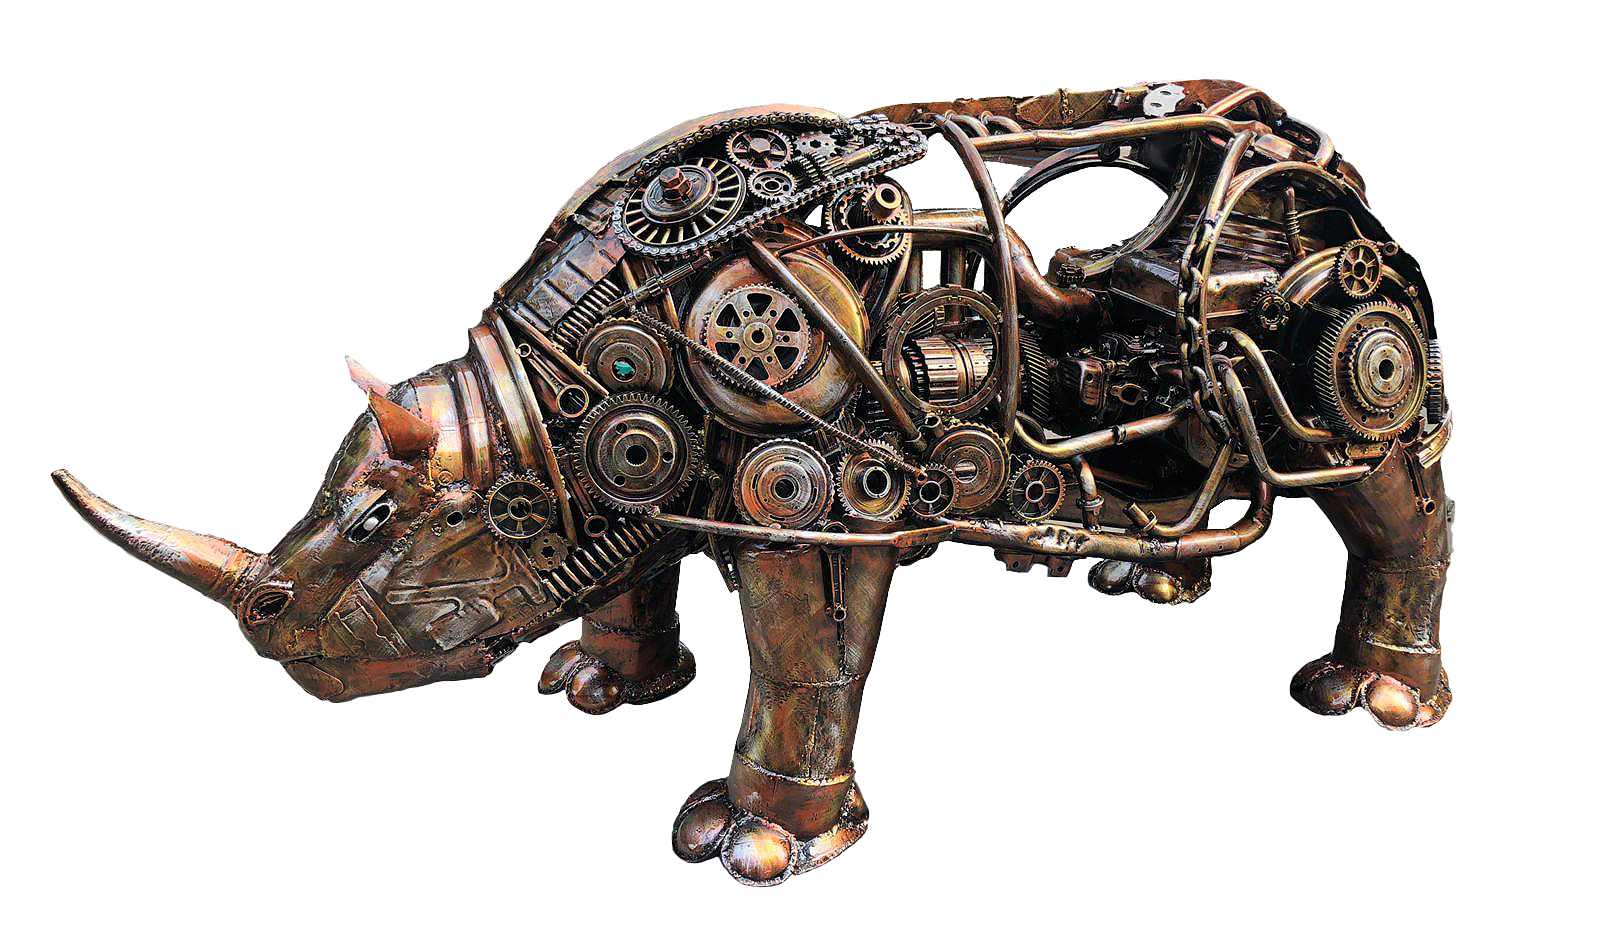 Amating Metal Art Gallery - Rhinoceros